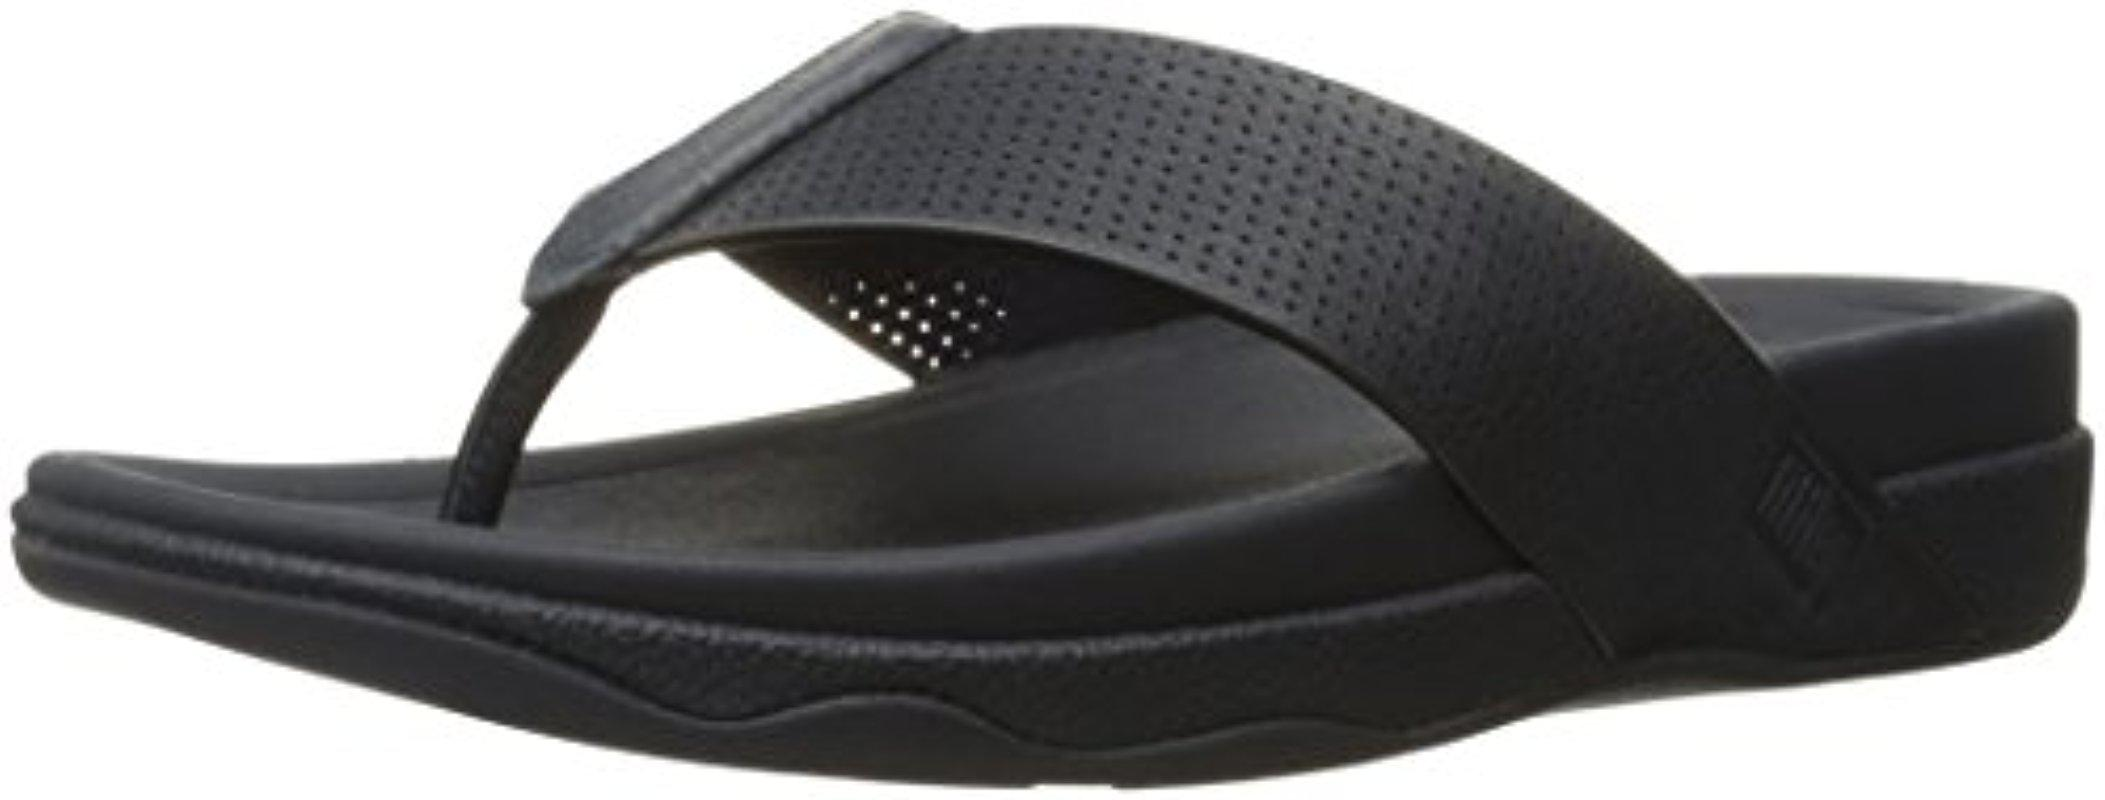 403528c30e0 Lyst - Fitflop Surfer Perf Leather Flip Flop - Save 39%